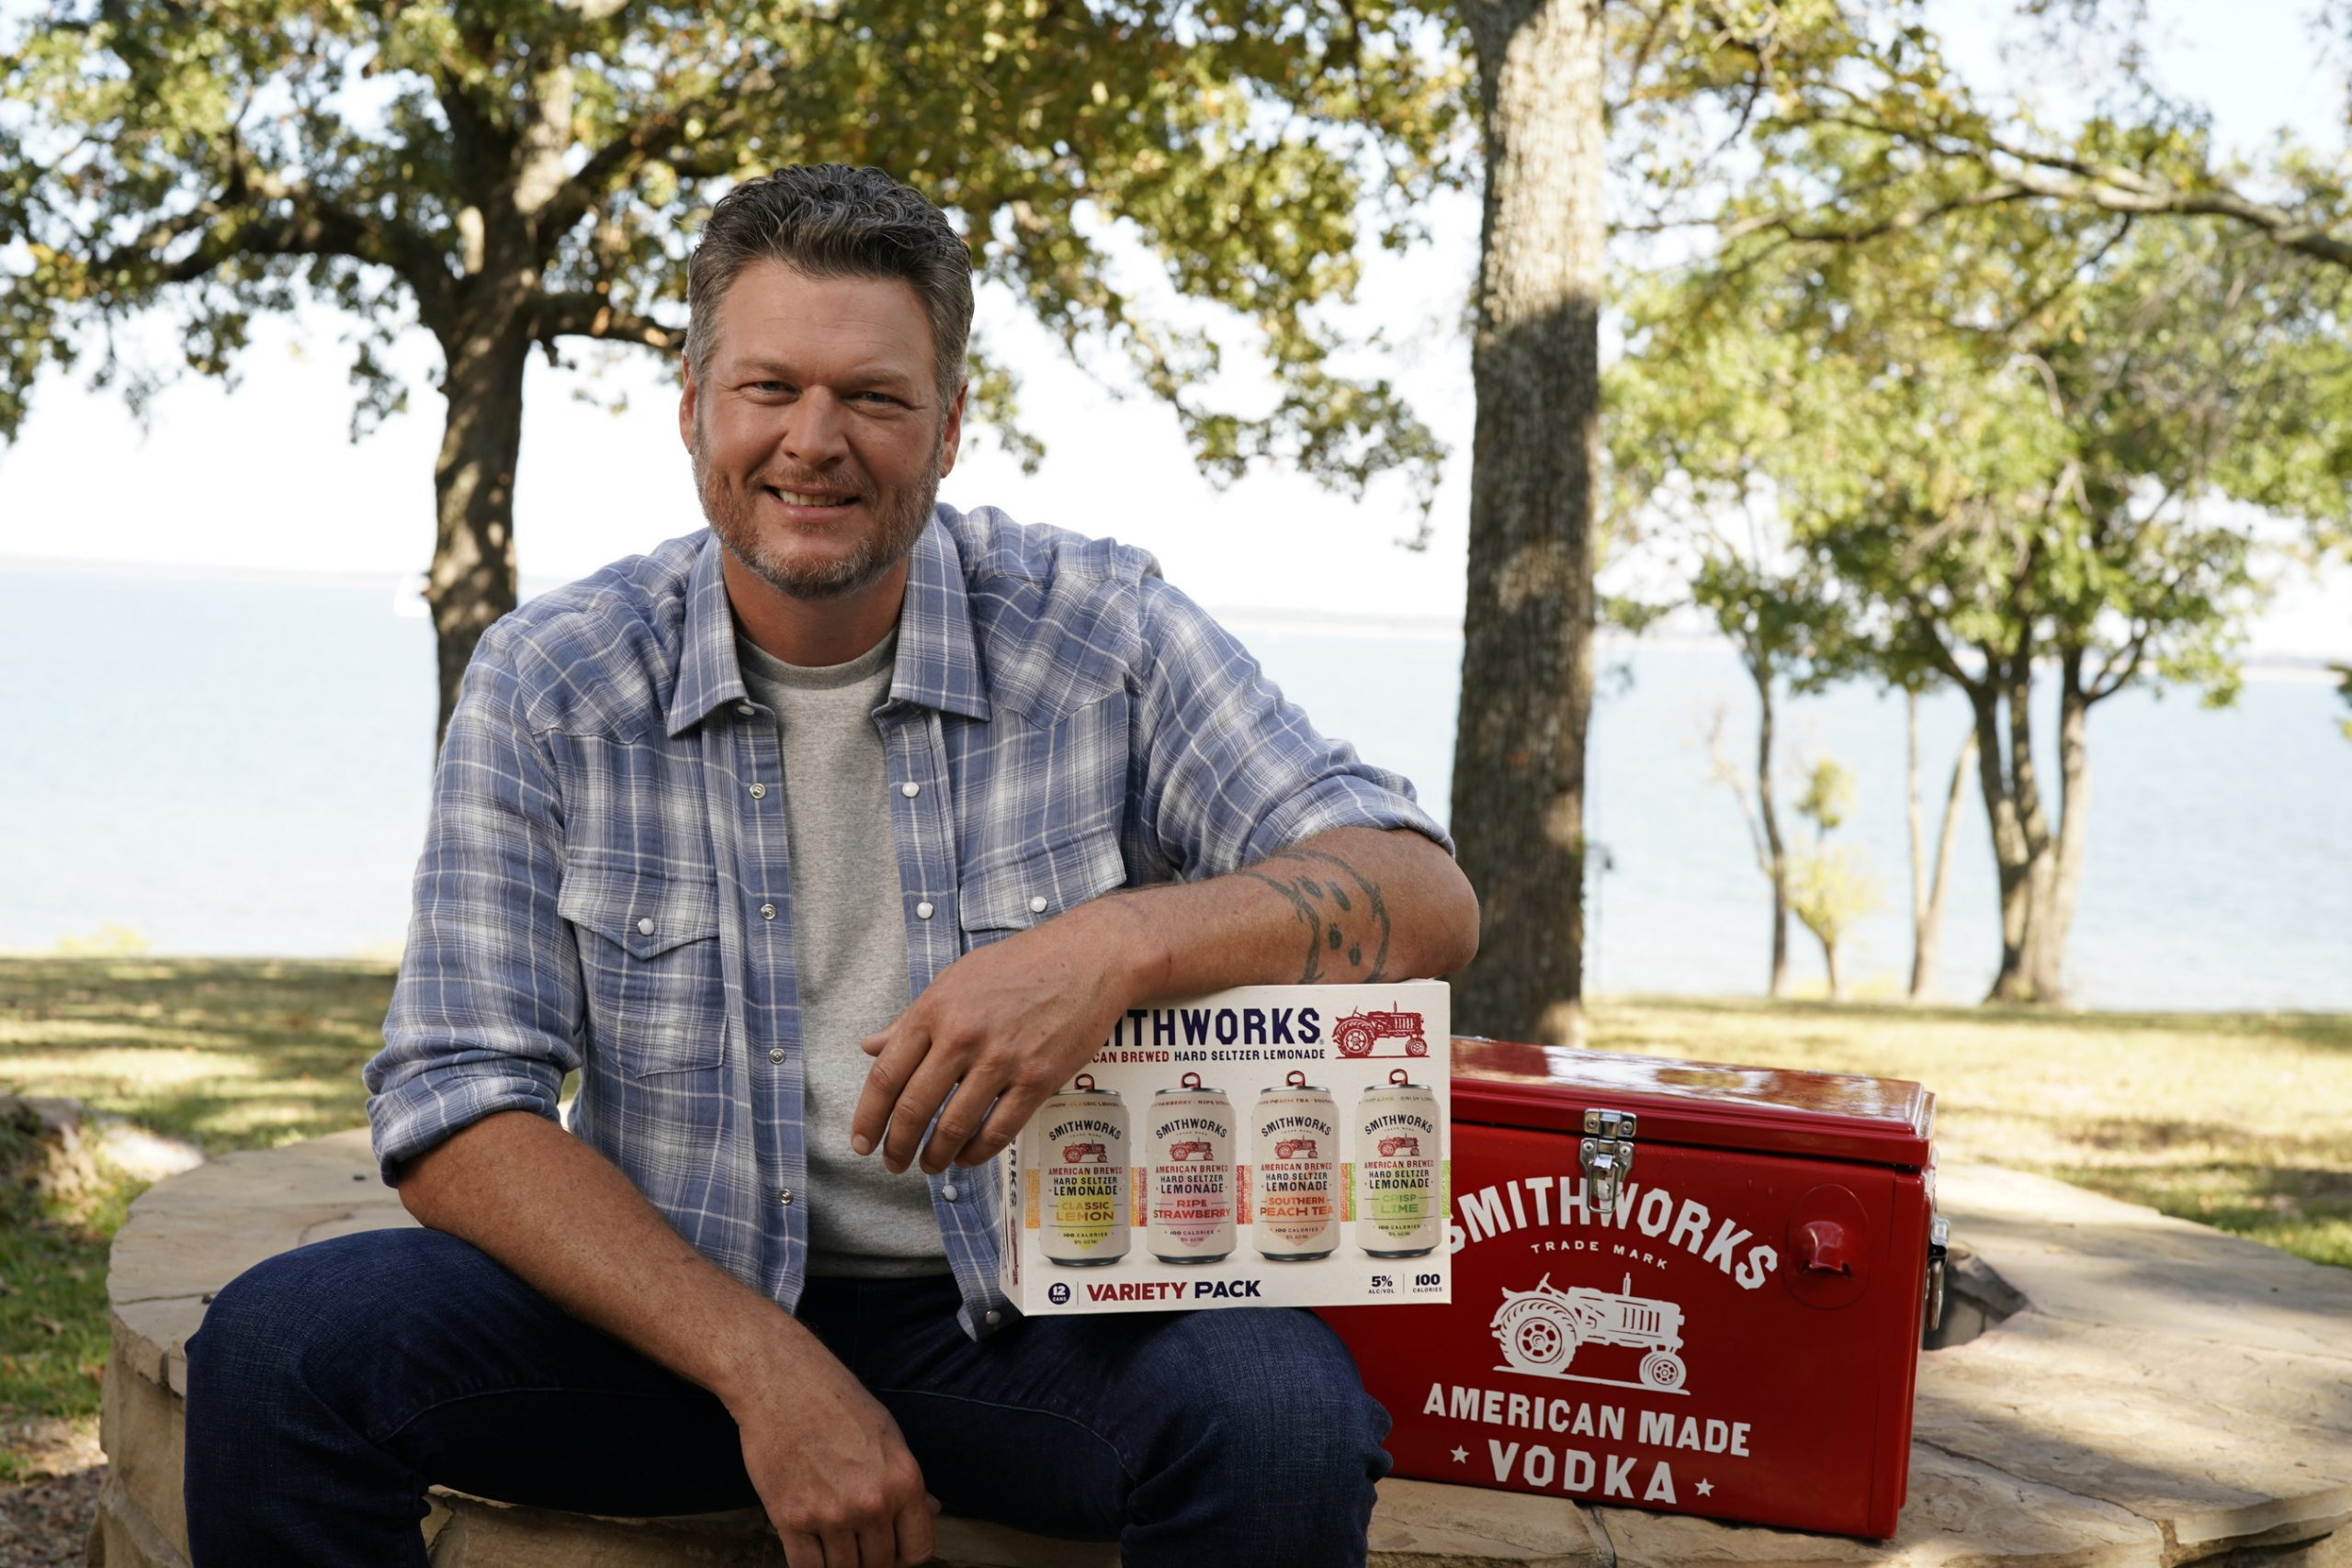 Smithworks® and Blake Shelton Launch a New Ready-To-Drink American-Brewed Hard Seltzer Lemonade | PR Newswire